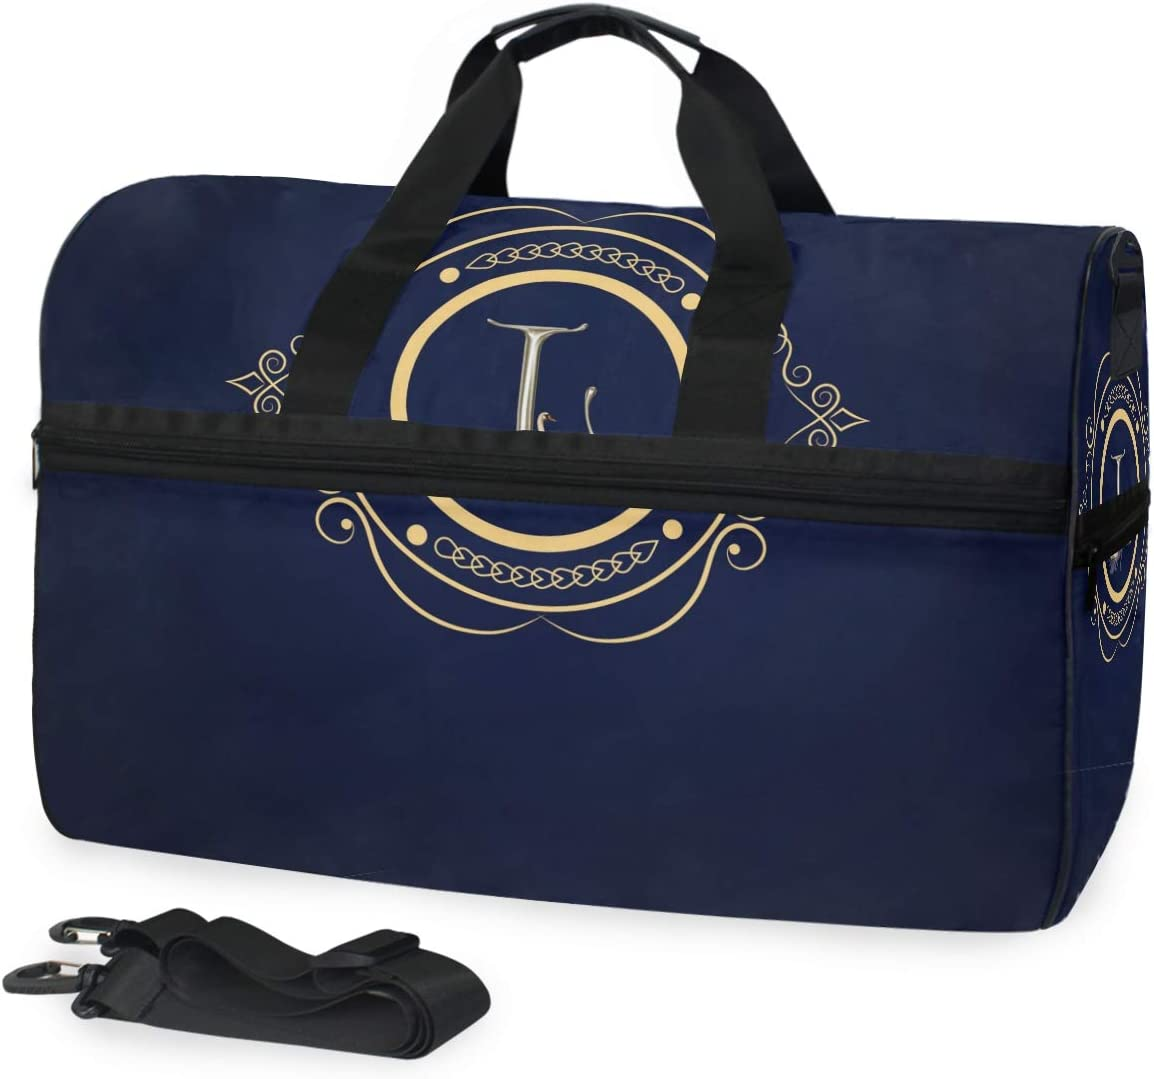 MALPLENA Letter Travel Duffel Bag Weekender Bag with Shoes Compartment for Men Women